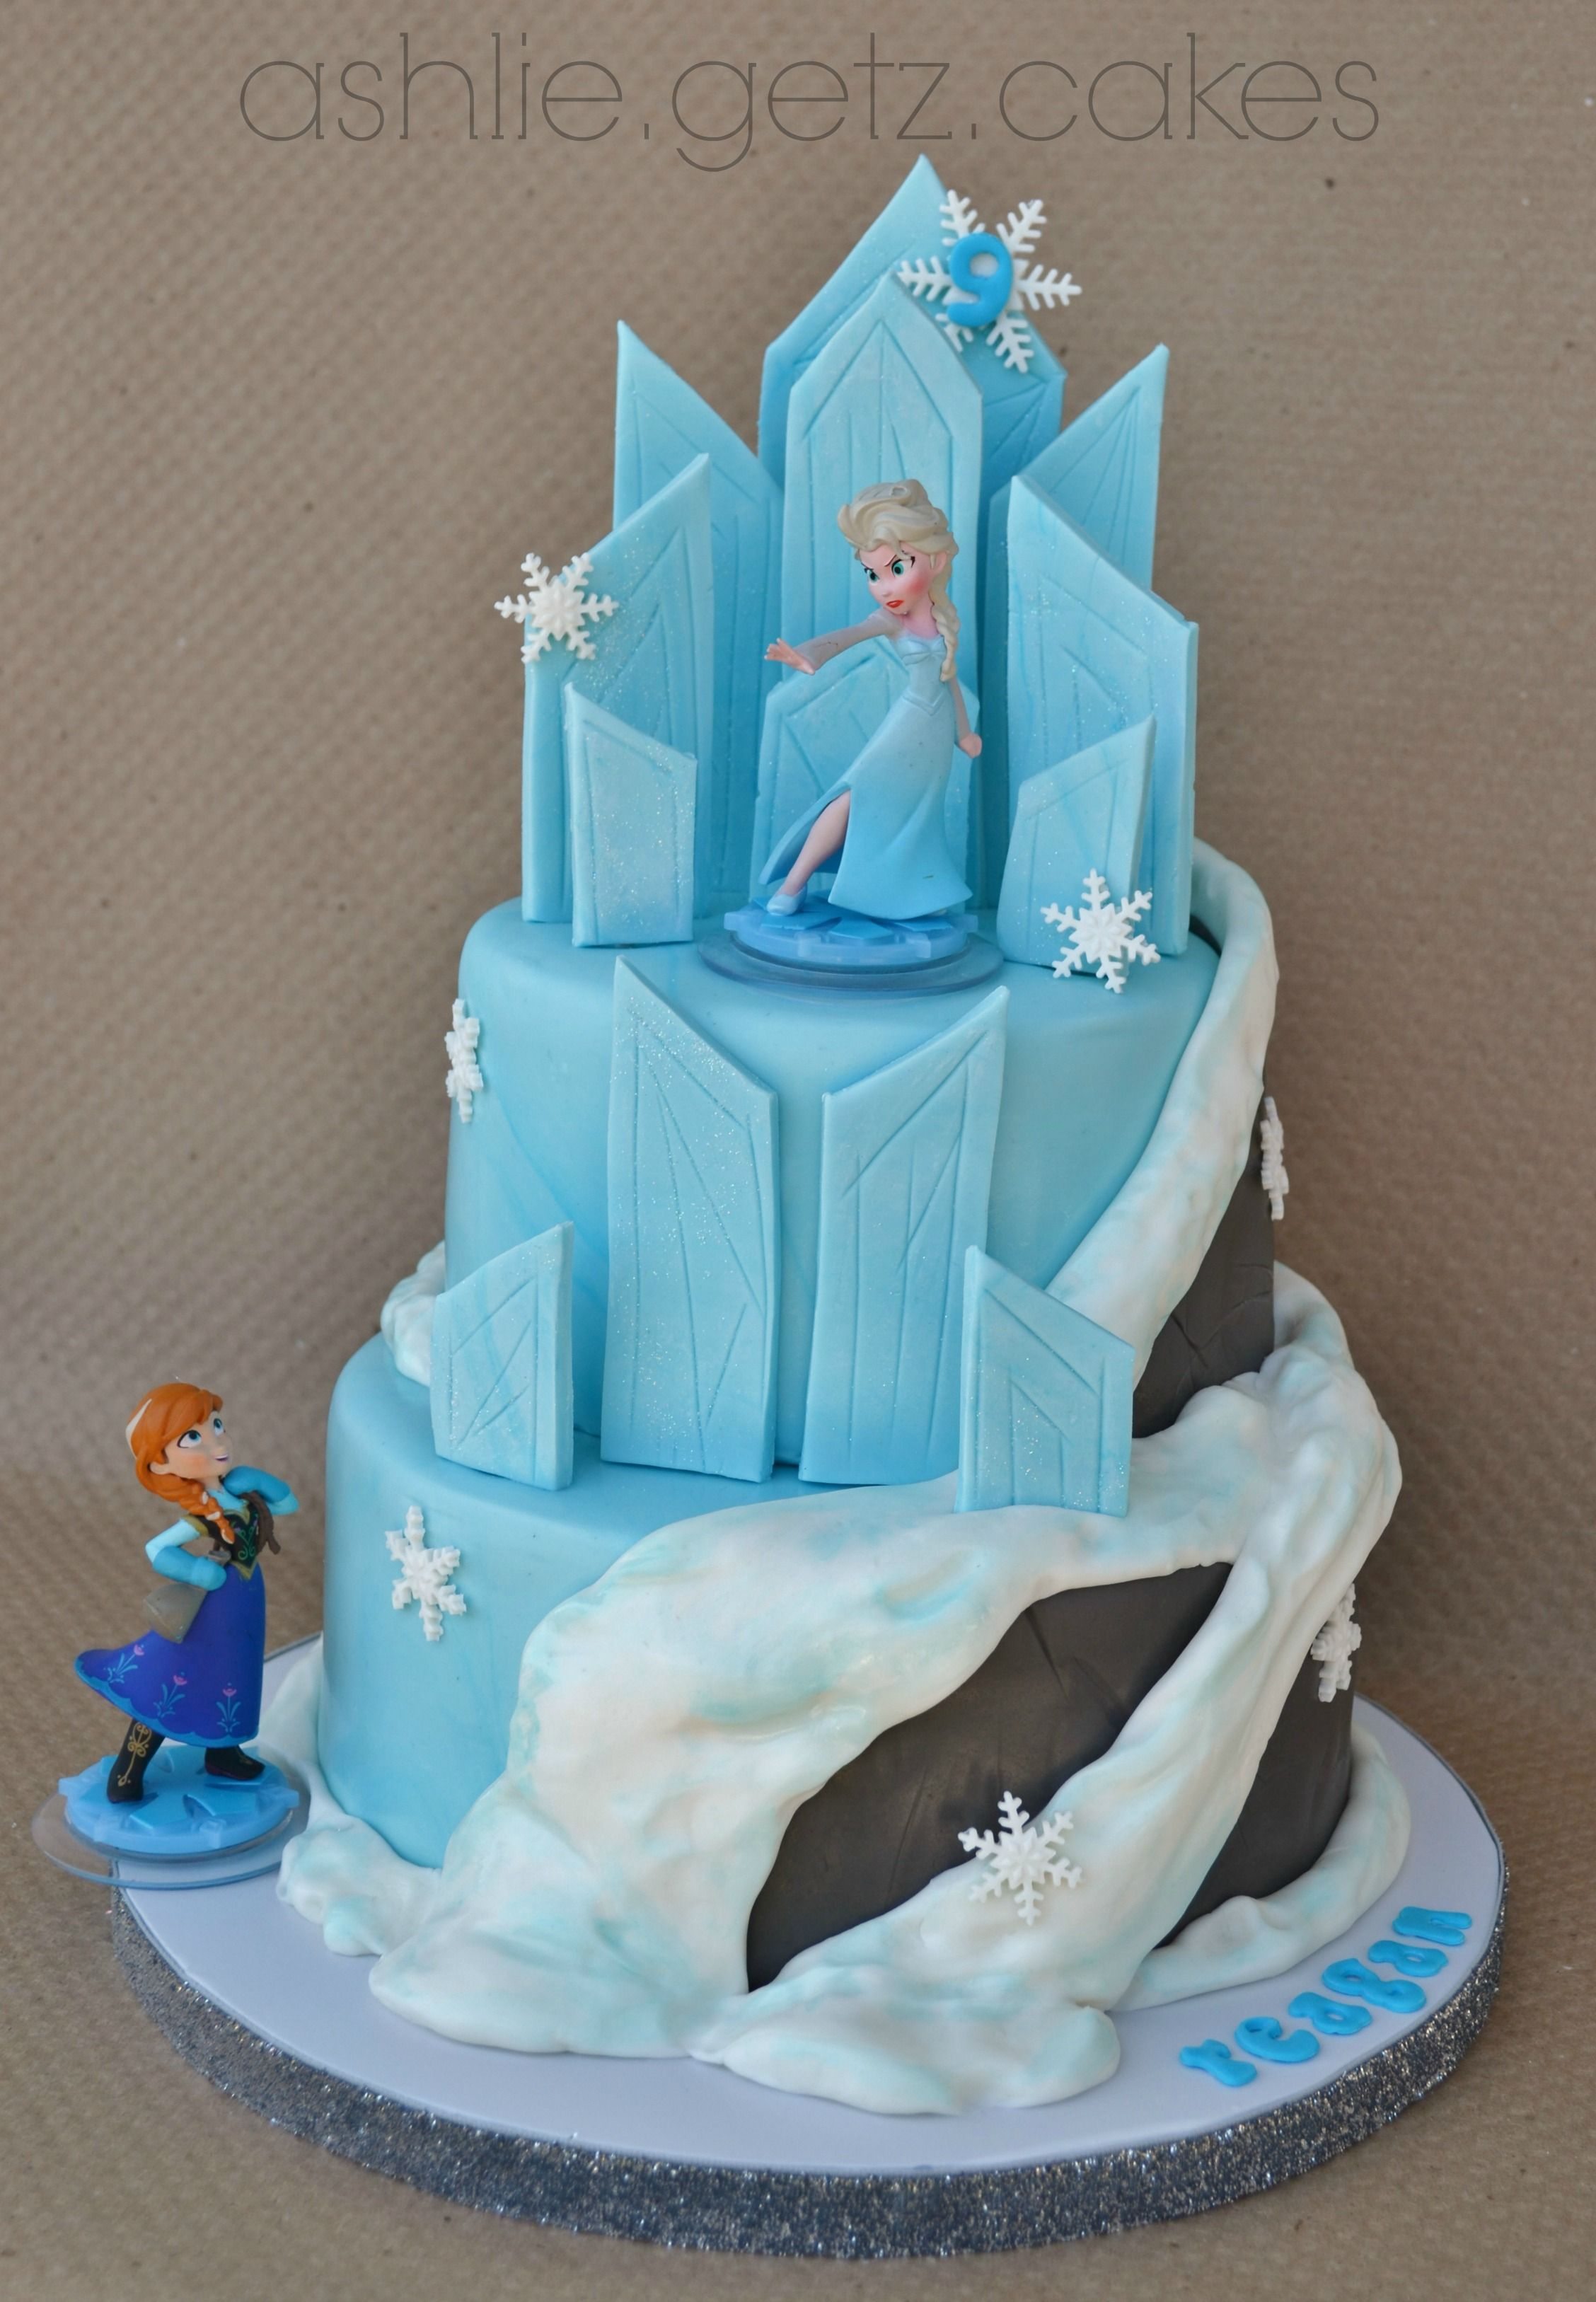 Disneys Frozen cake This cake was done in all fondant Disney